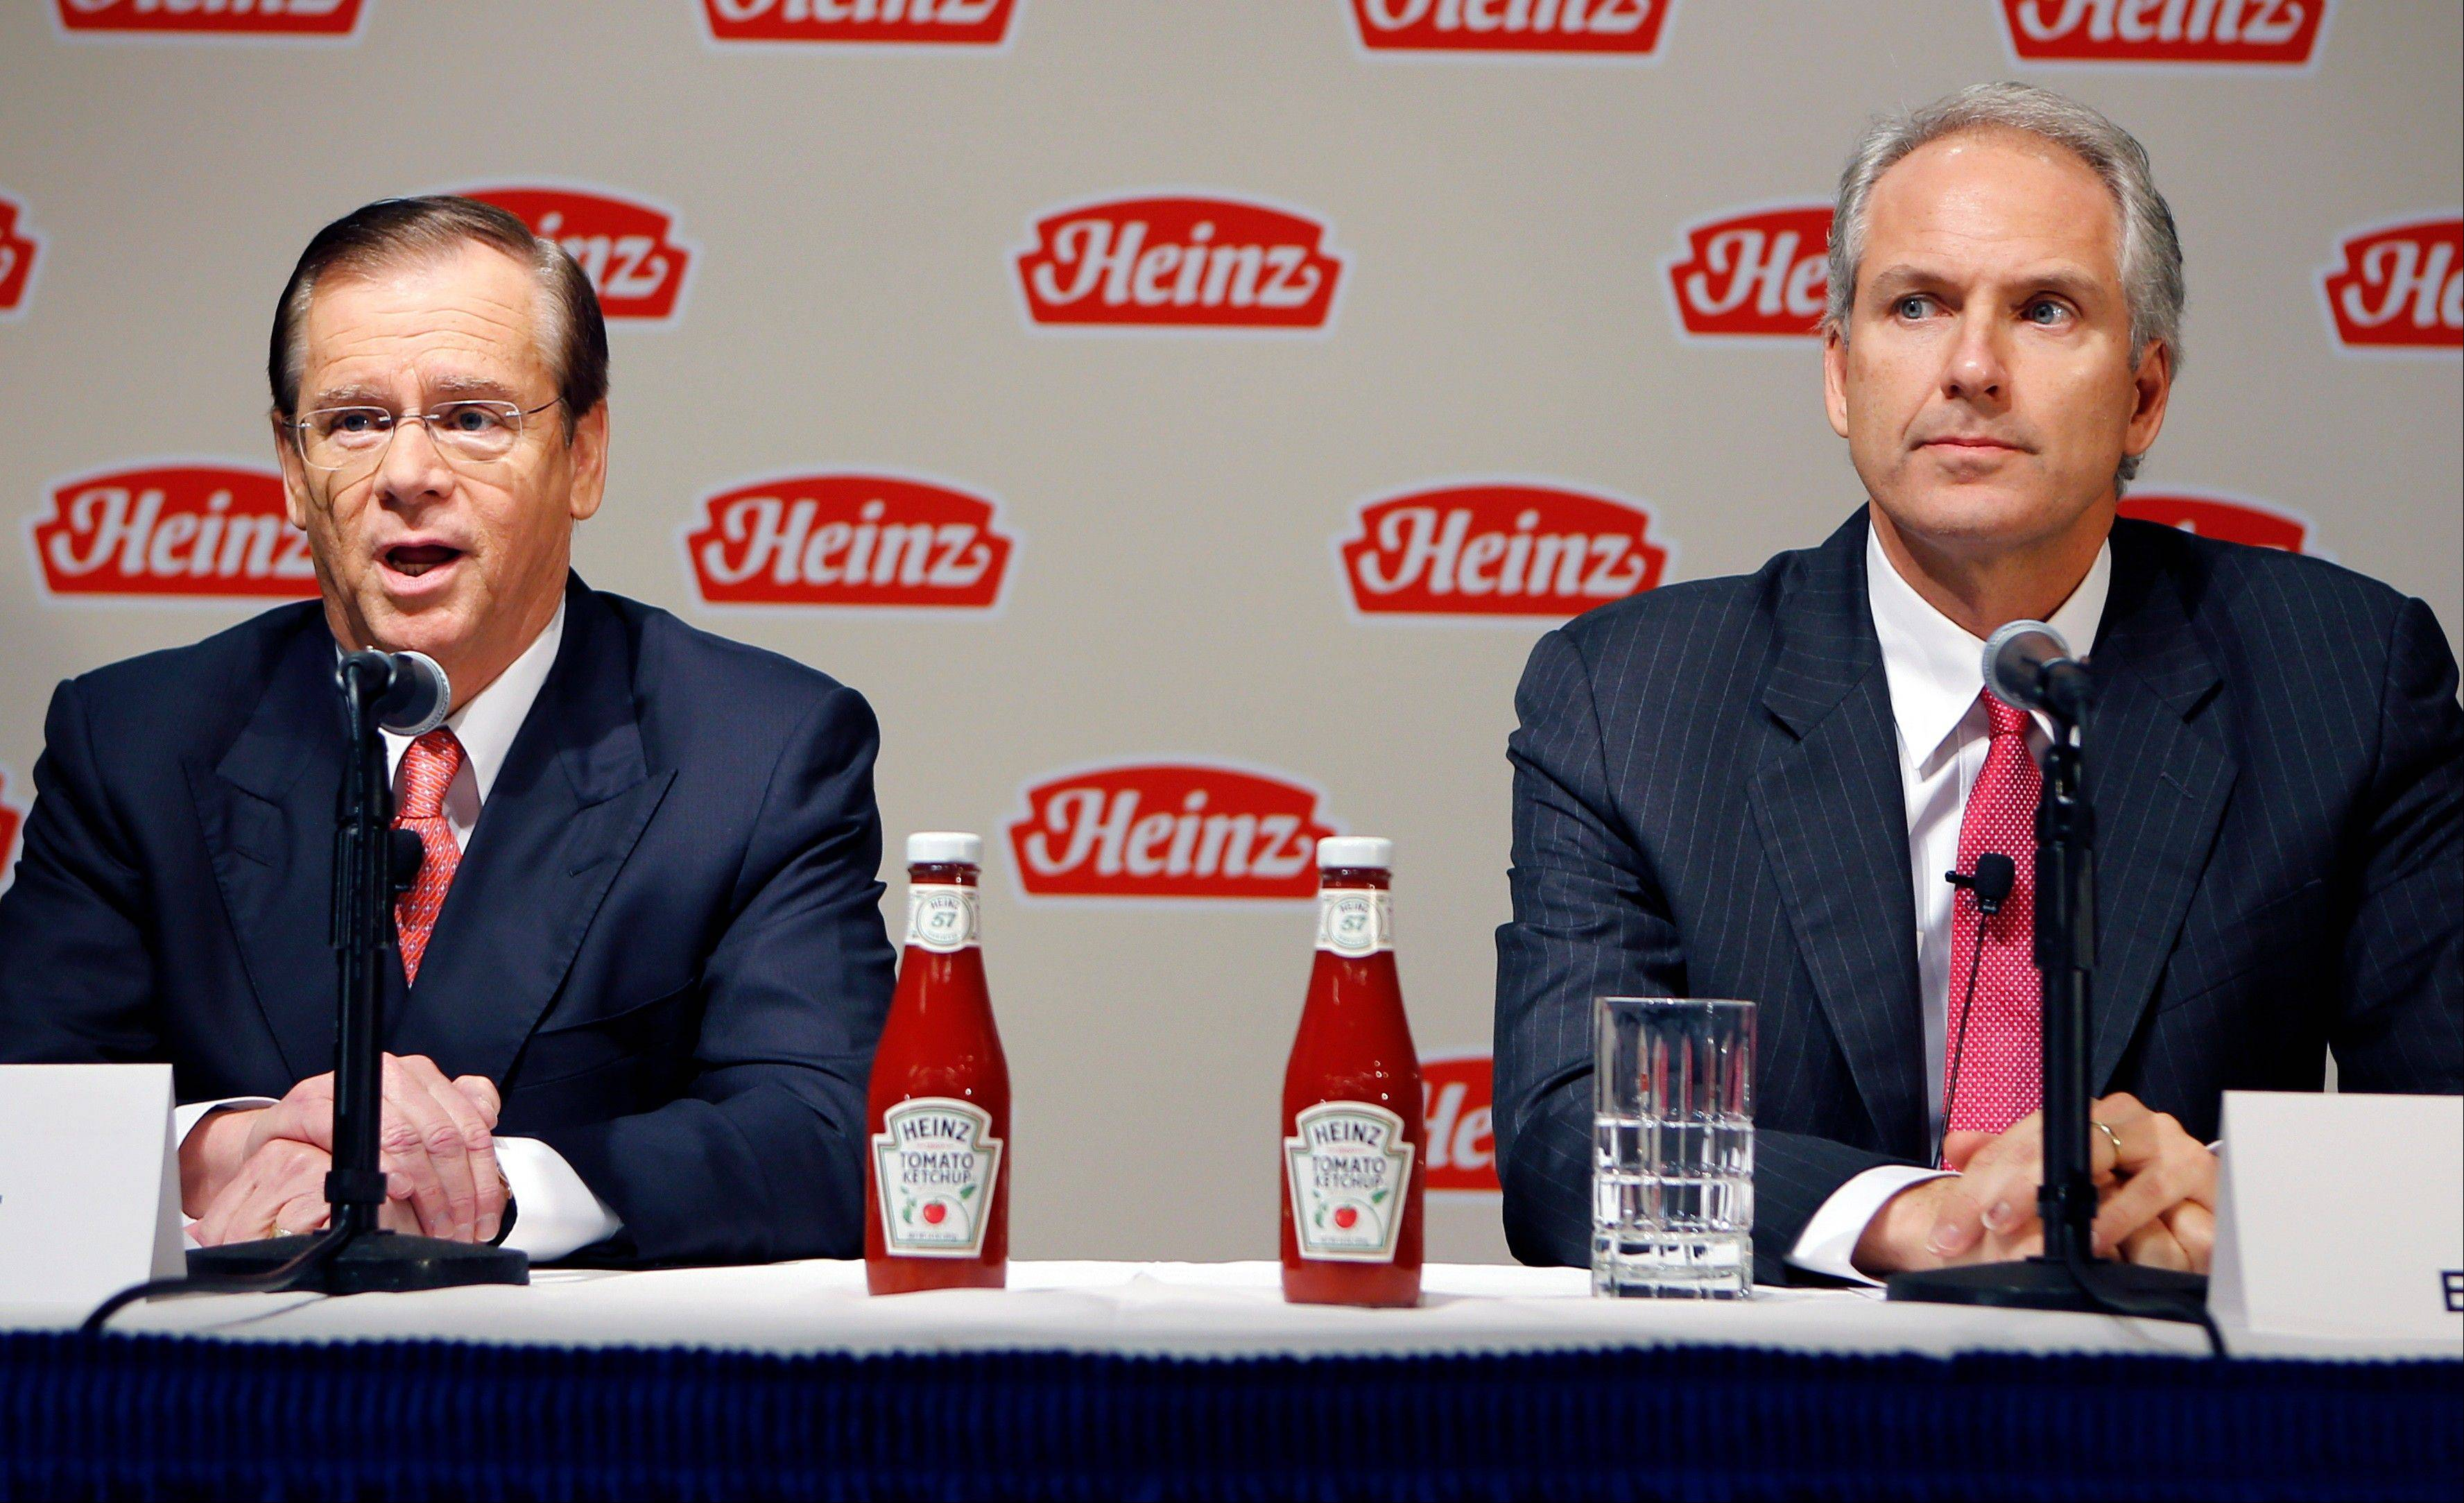 H.J. Heinz Co. CEO William Johnson, left, and 3G Capital Managing Partner, Alex Behring, speak at a news conference at the world headquarters of the H.J. Heinz Co. in Pittsburgh. A sluggish economic recovery, pricey stock evaluations and fears of more gridlock in Washington have stalled deal activity in 2013. Berkshire Hathaway and 3G Capital acquiring Heinz is one of the few big deals this year.